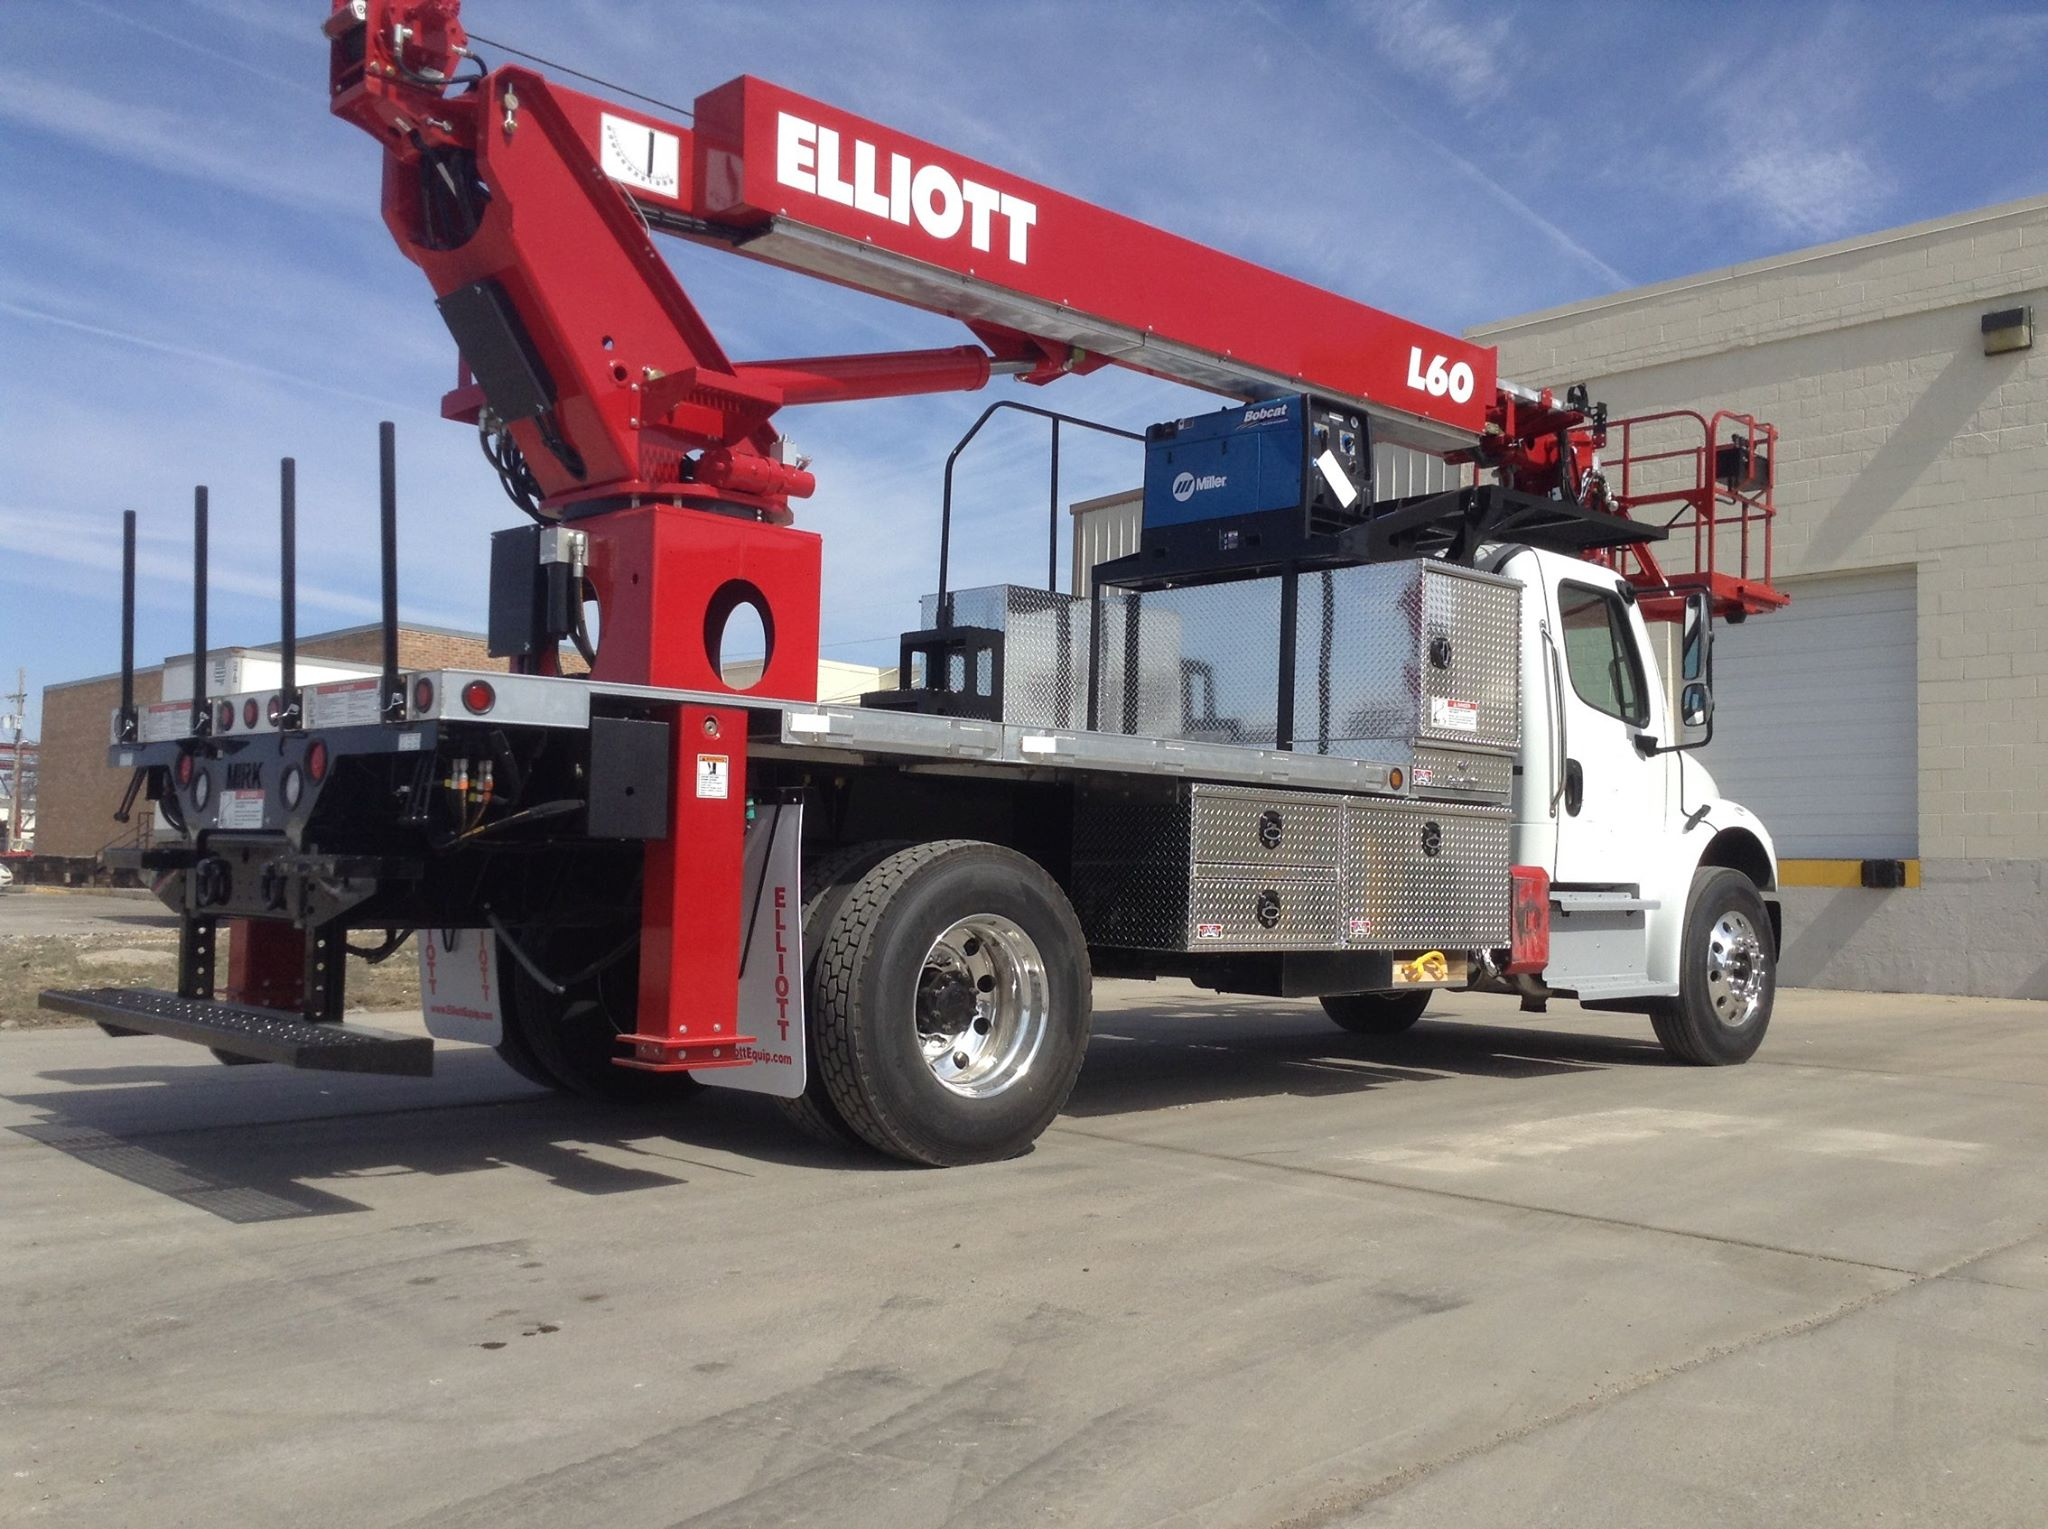 UTE of Circleville is looking to Hire a HYDRAULIC EQUIPMENT